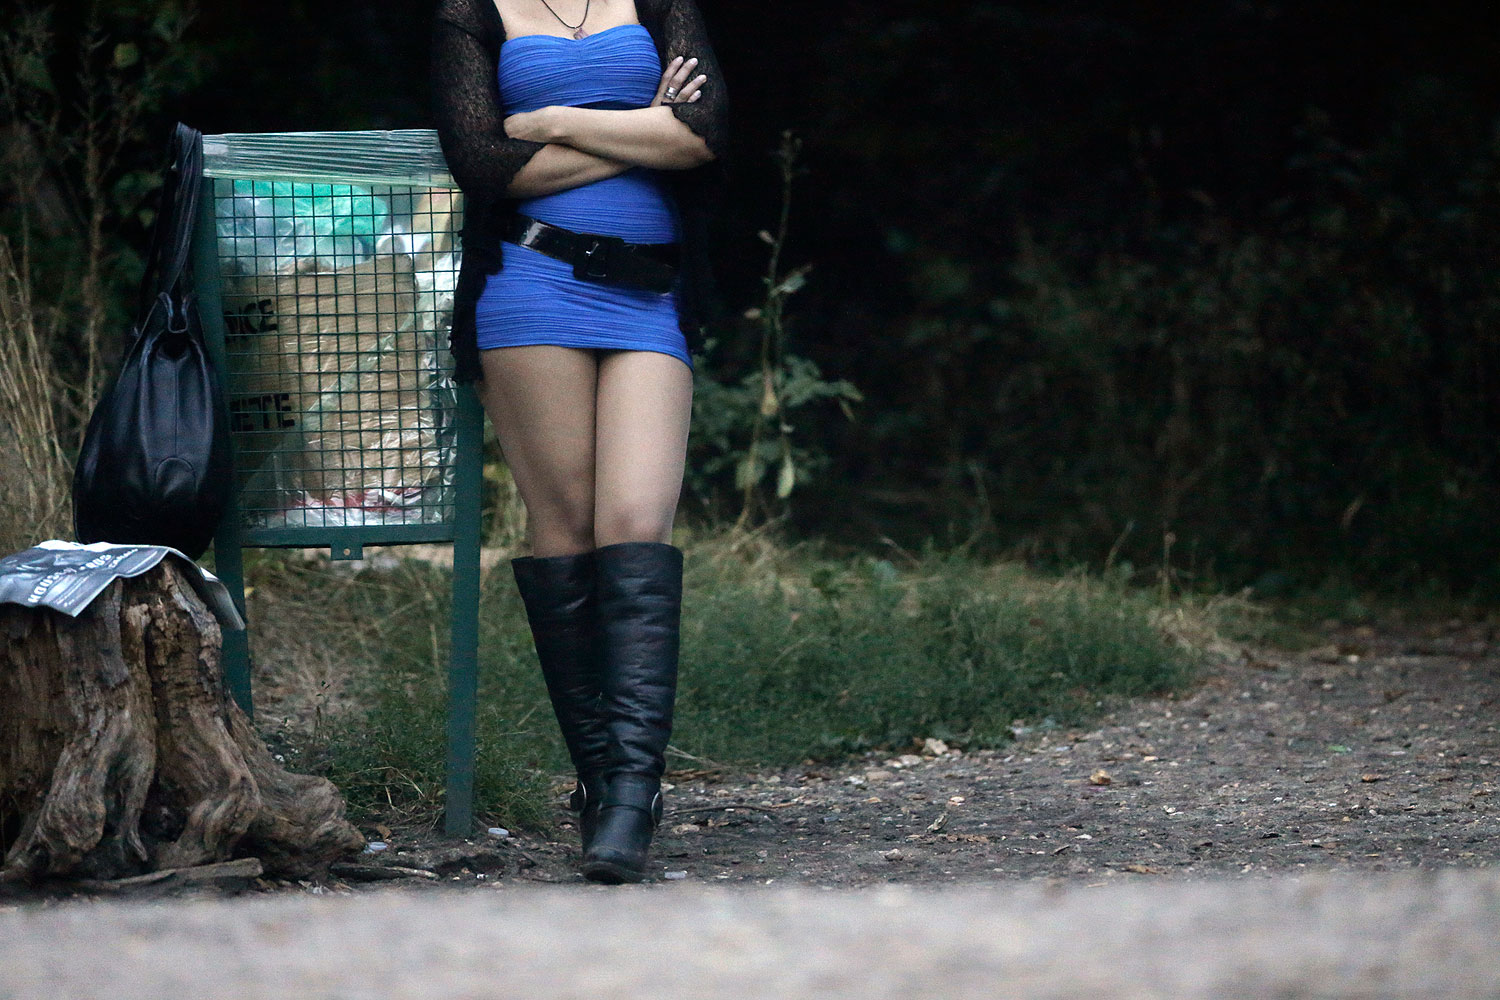 A prostitute waits for customers along a road of the Bois de Boulogne in Paris Aug. 28, 2013